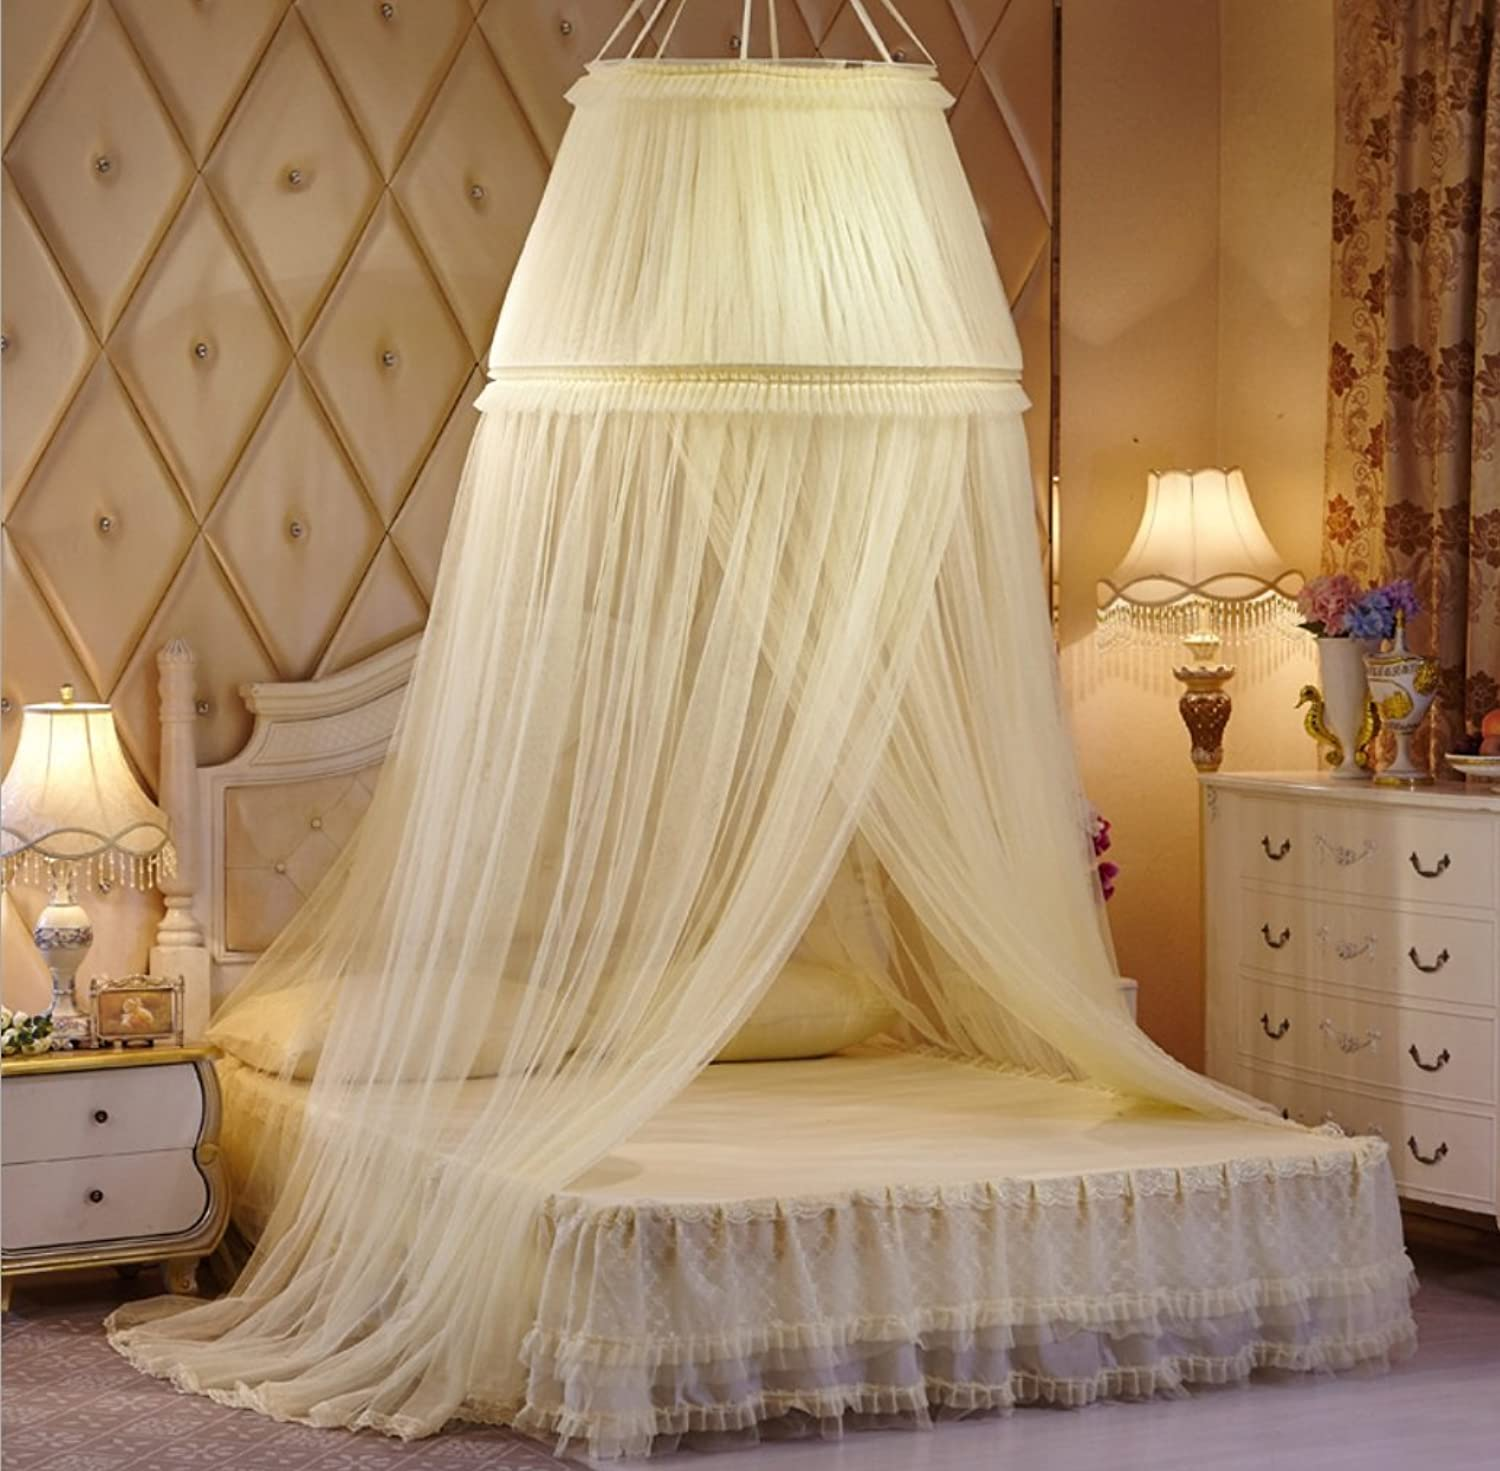 Hanging Palace-Style Mosquito Net European Romantic Style Size Bed Universal Lower Diameter 100cm Lace ZXCV (color   Beige)